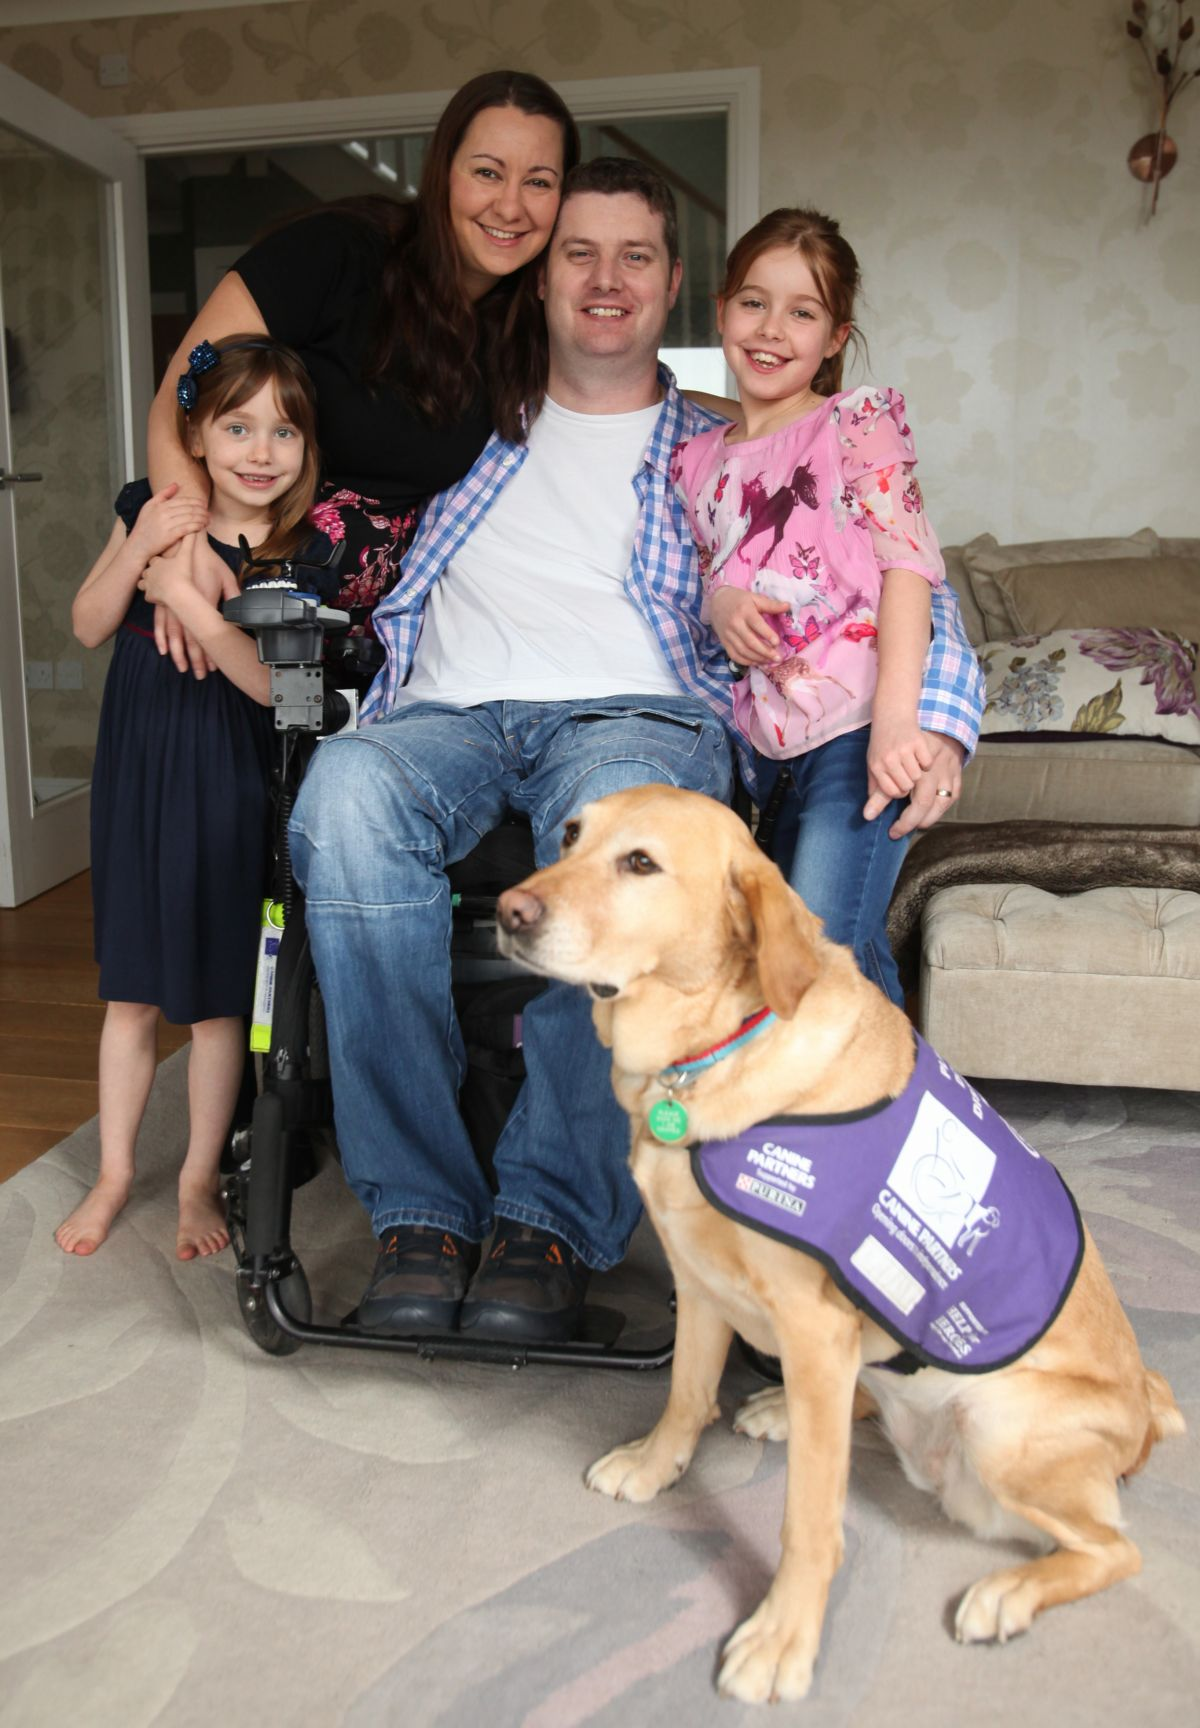 Steve with his family and Canine Partners dog Kizzie